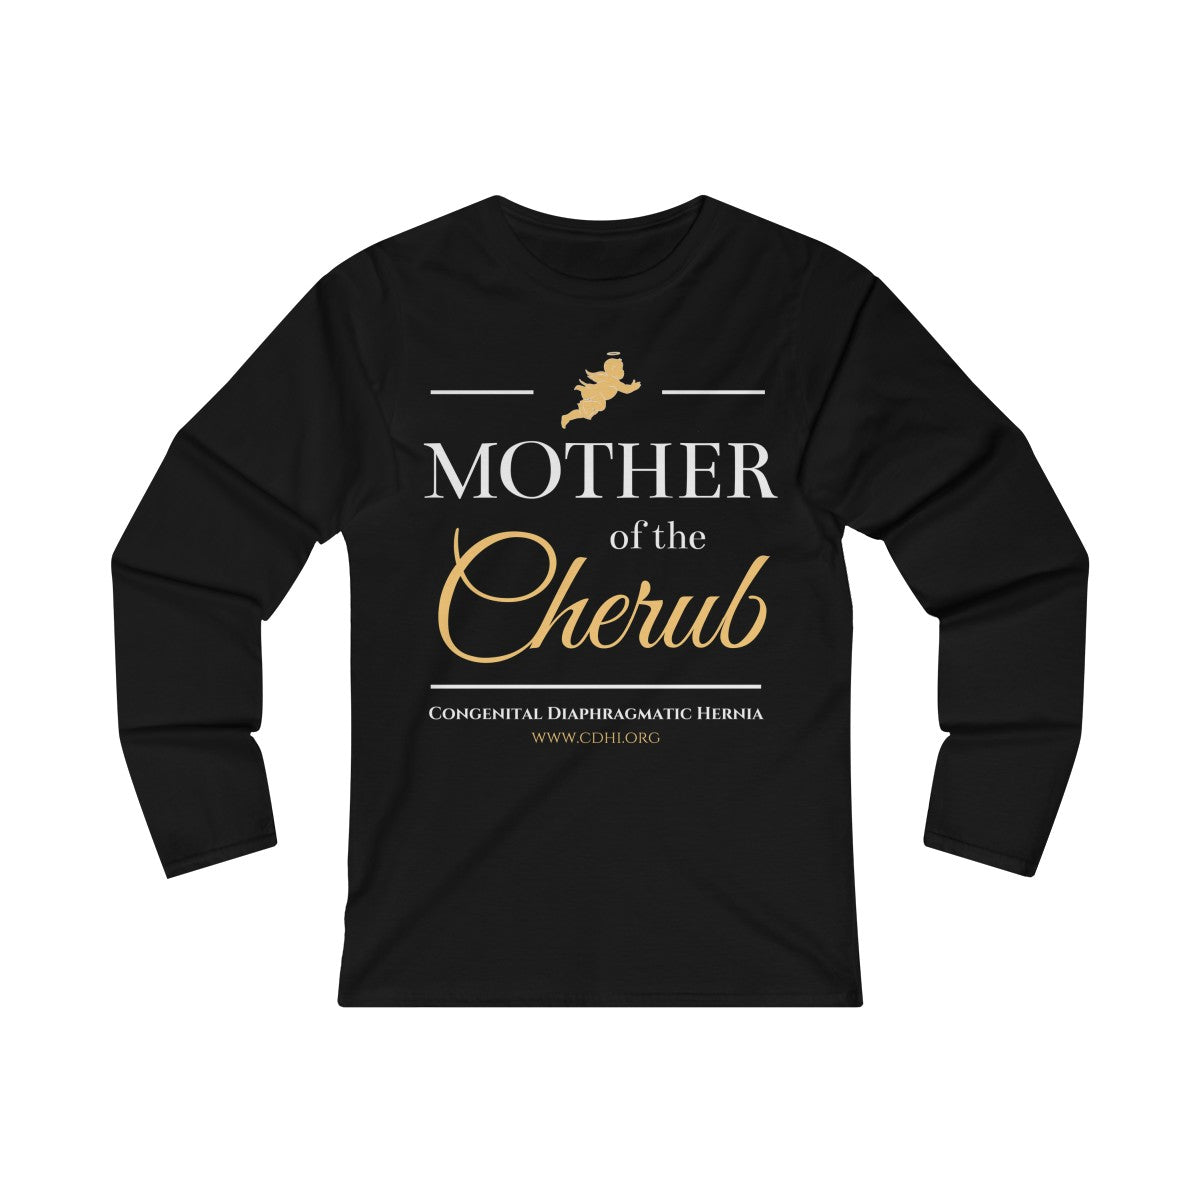 """Mother of the Cherub"" Women's Fitted Long Sleeve Tee  (UK Printing)"